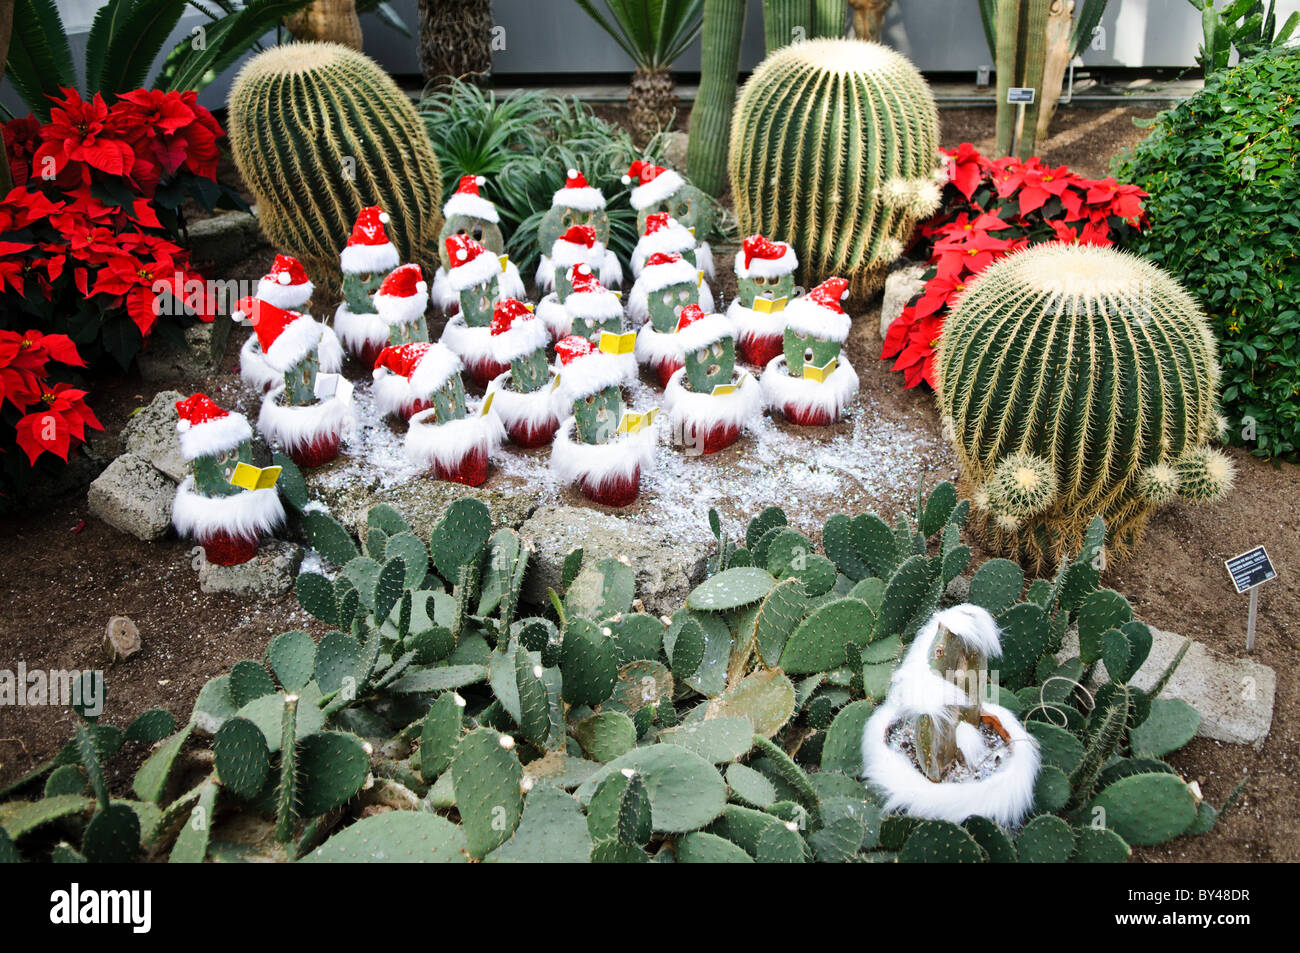 cacti are decorated as christmas carolers inside montreals botanical garden one of the worlds largest indoor botanical gardens featuring a range of